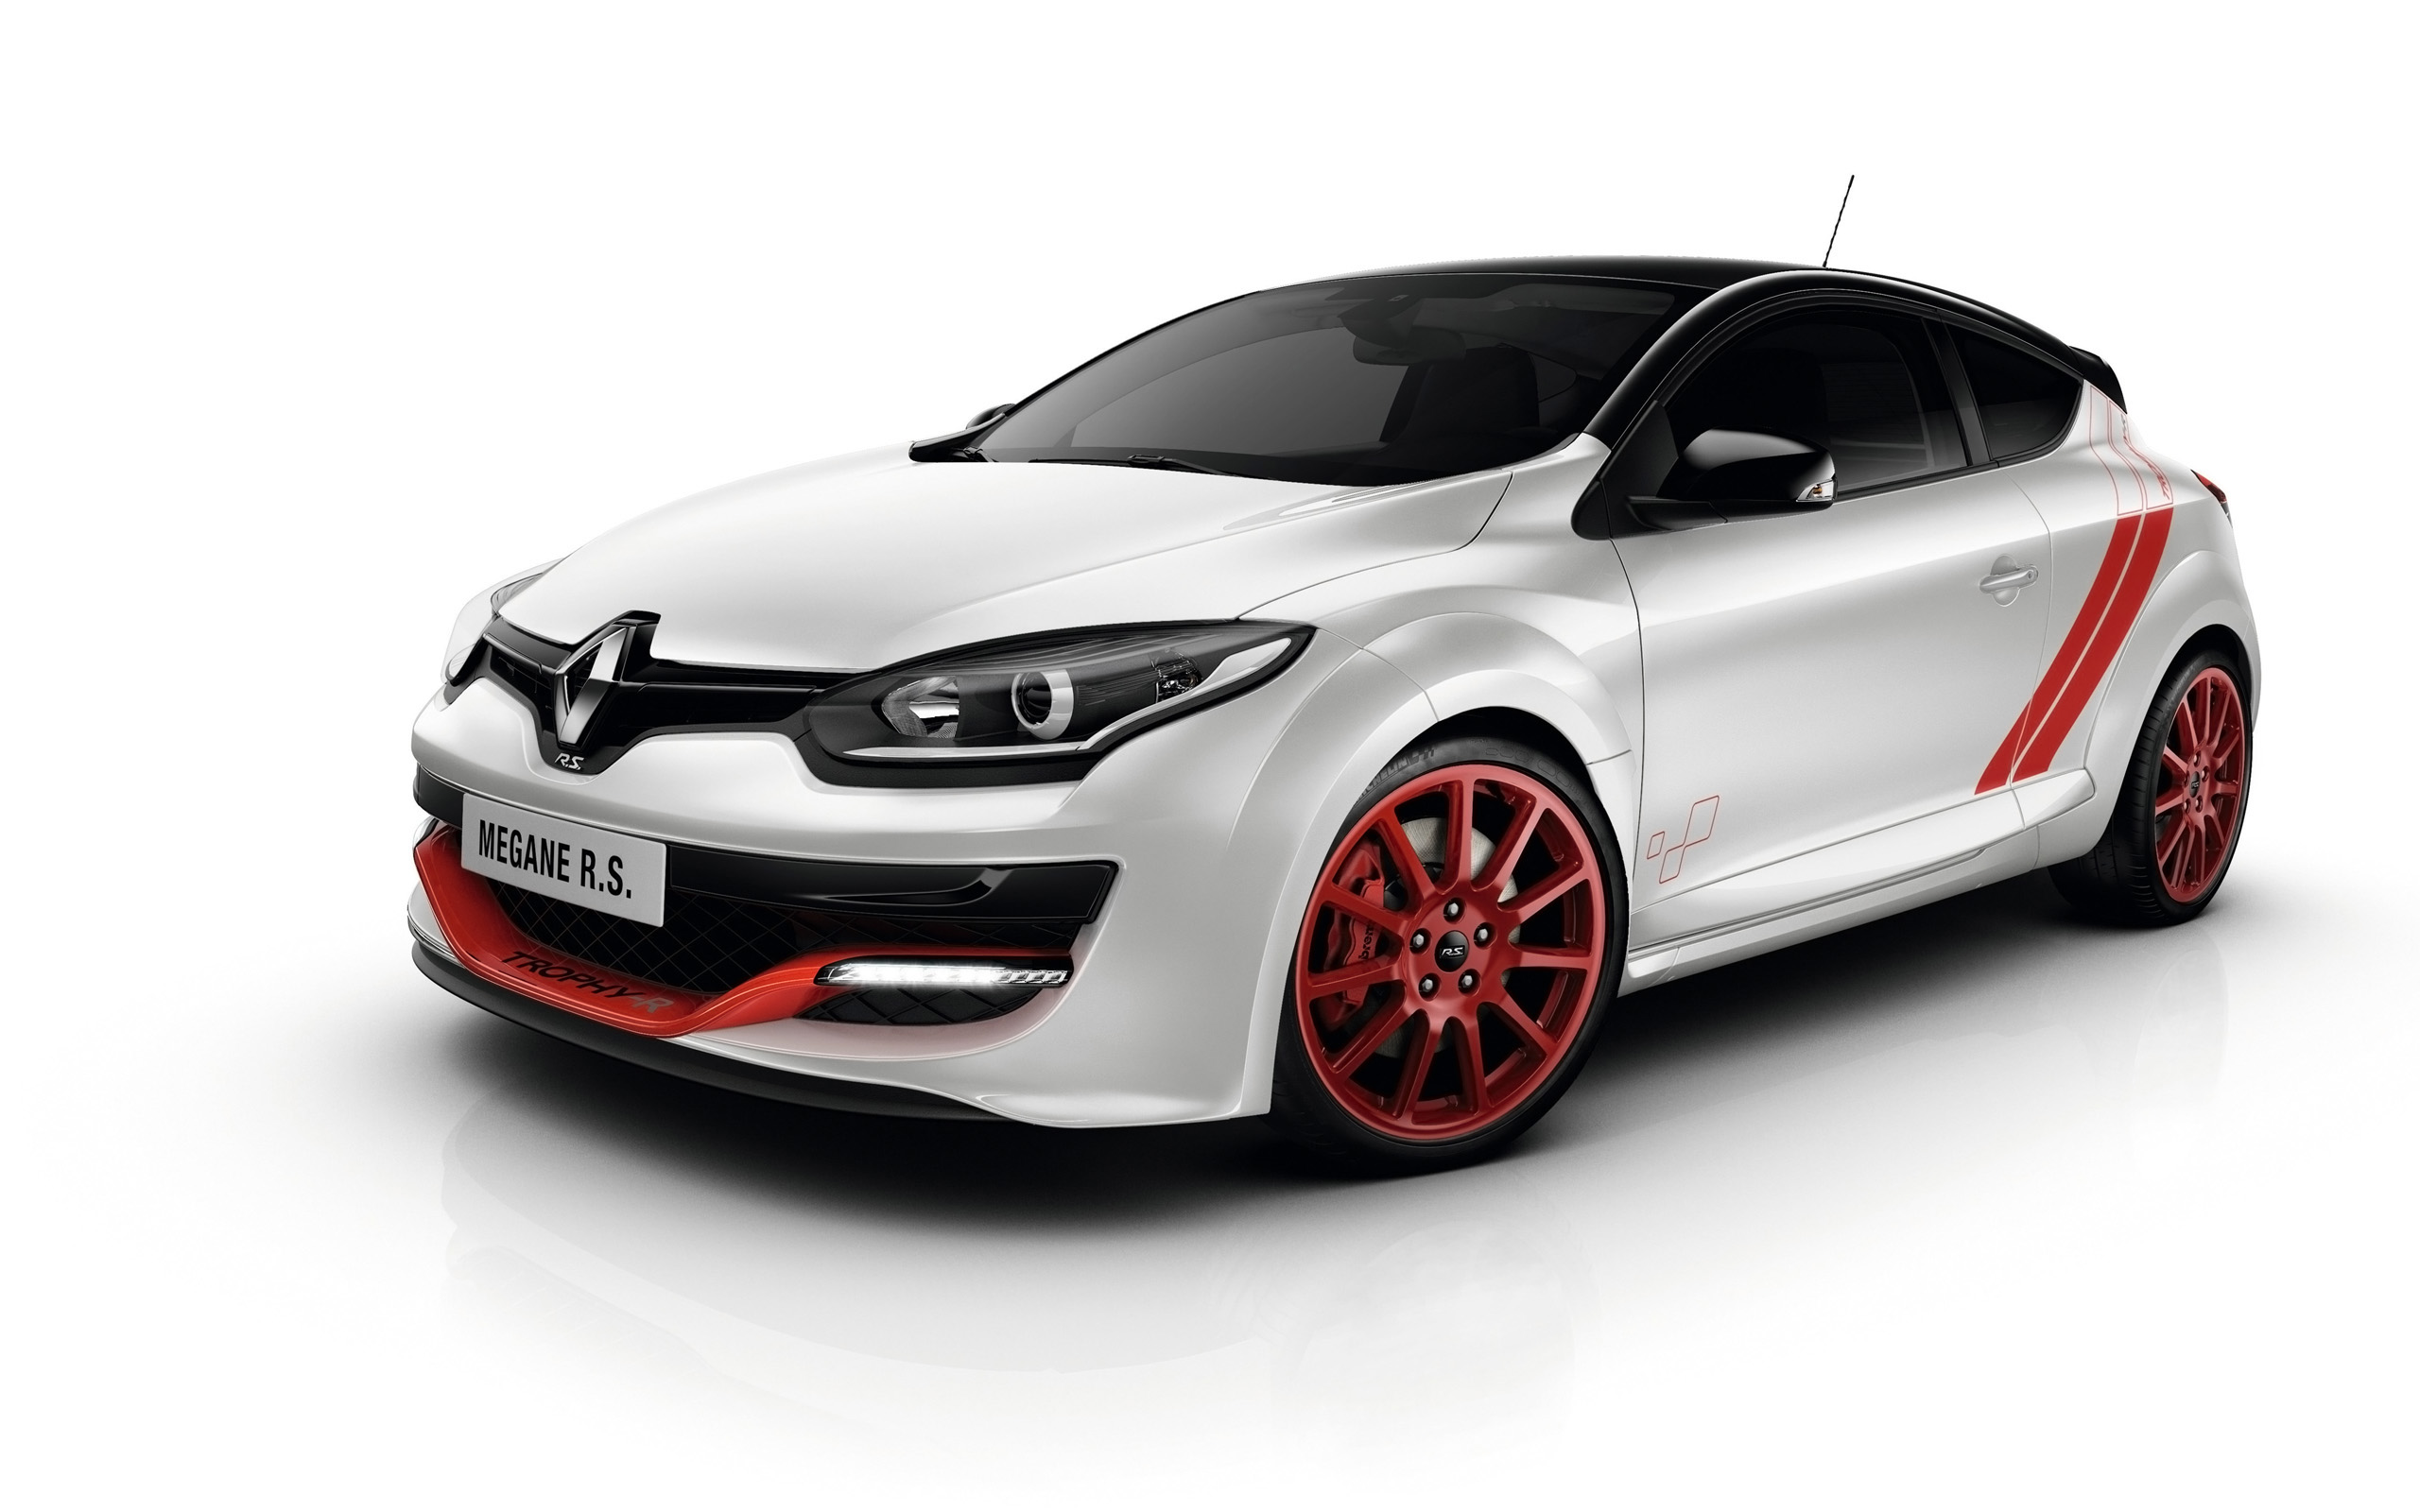 renault megane rs 275 trophy r 2014 wallpaper hd car. Black Bedroom Furniture Sets. Home Design Ideas